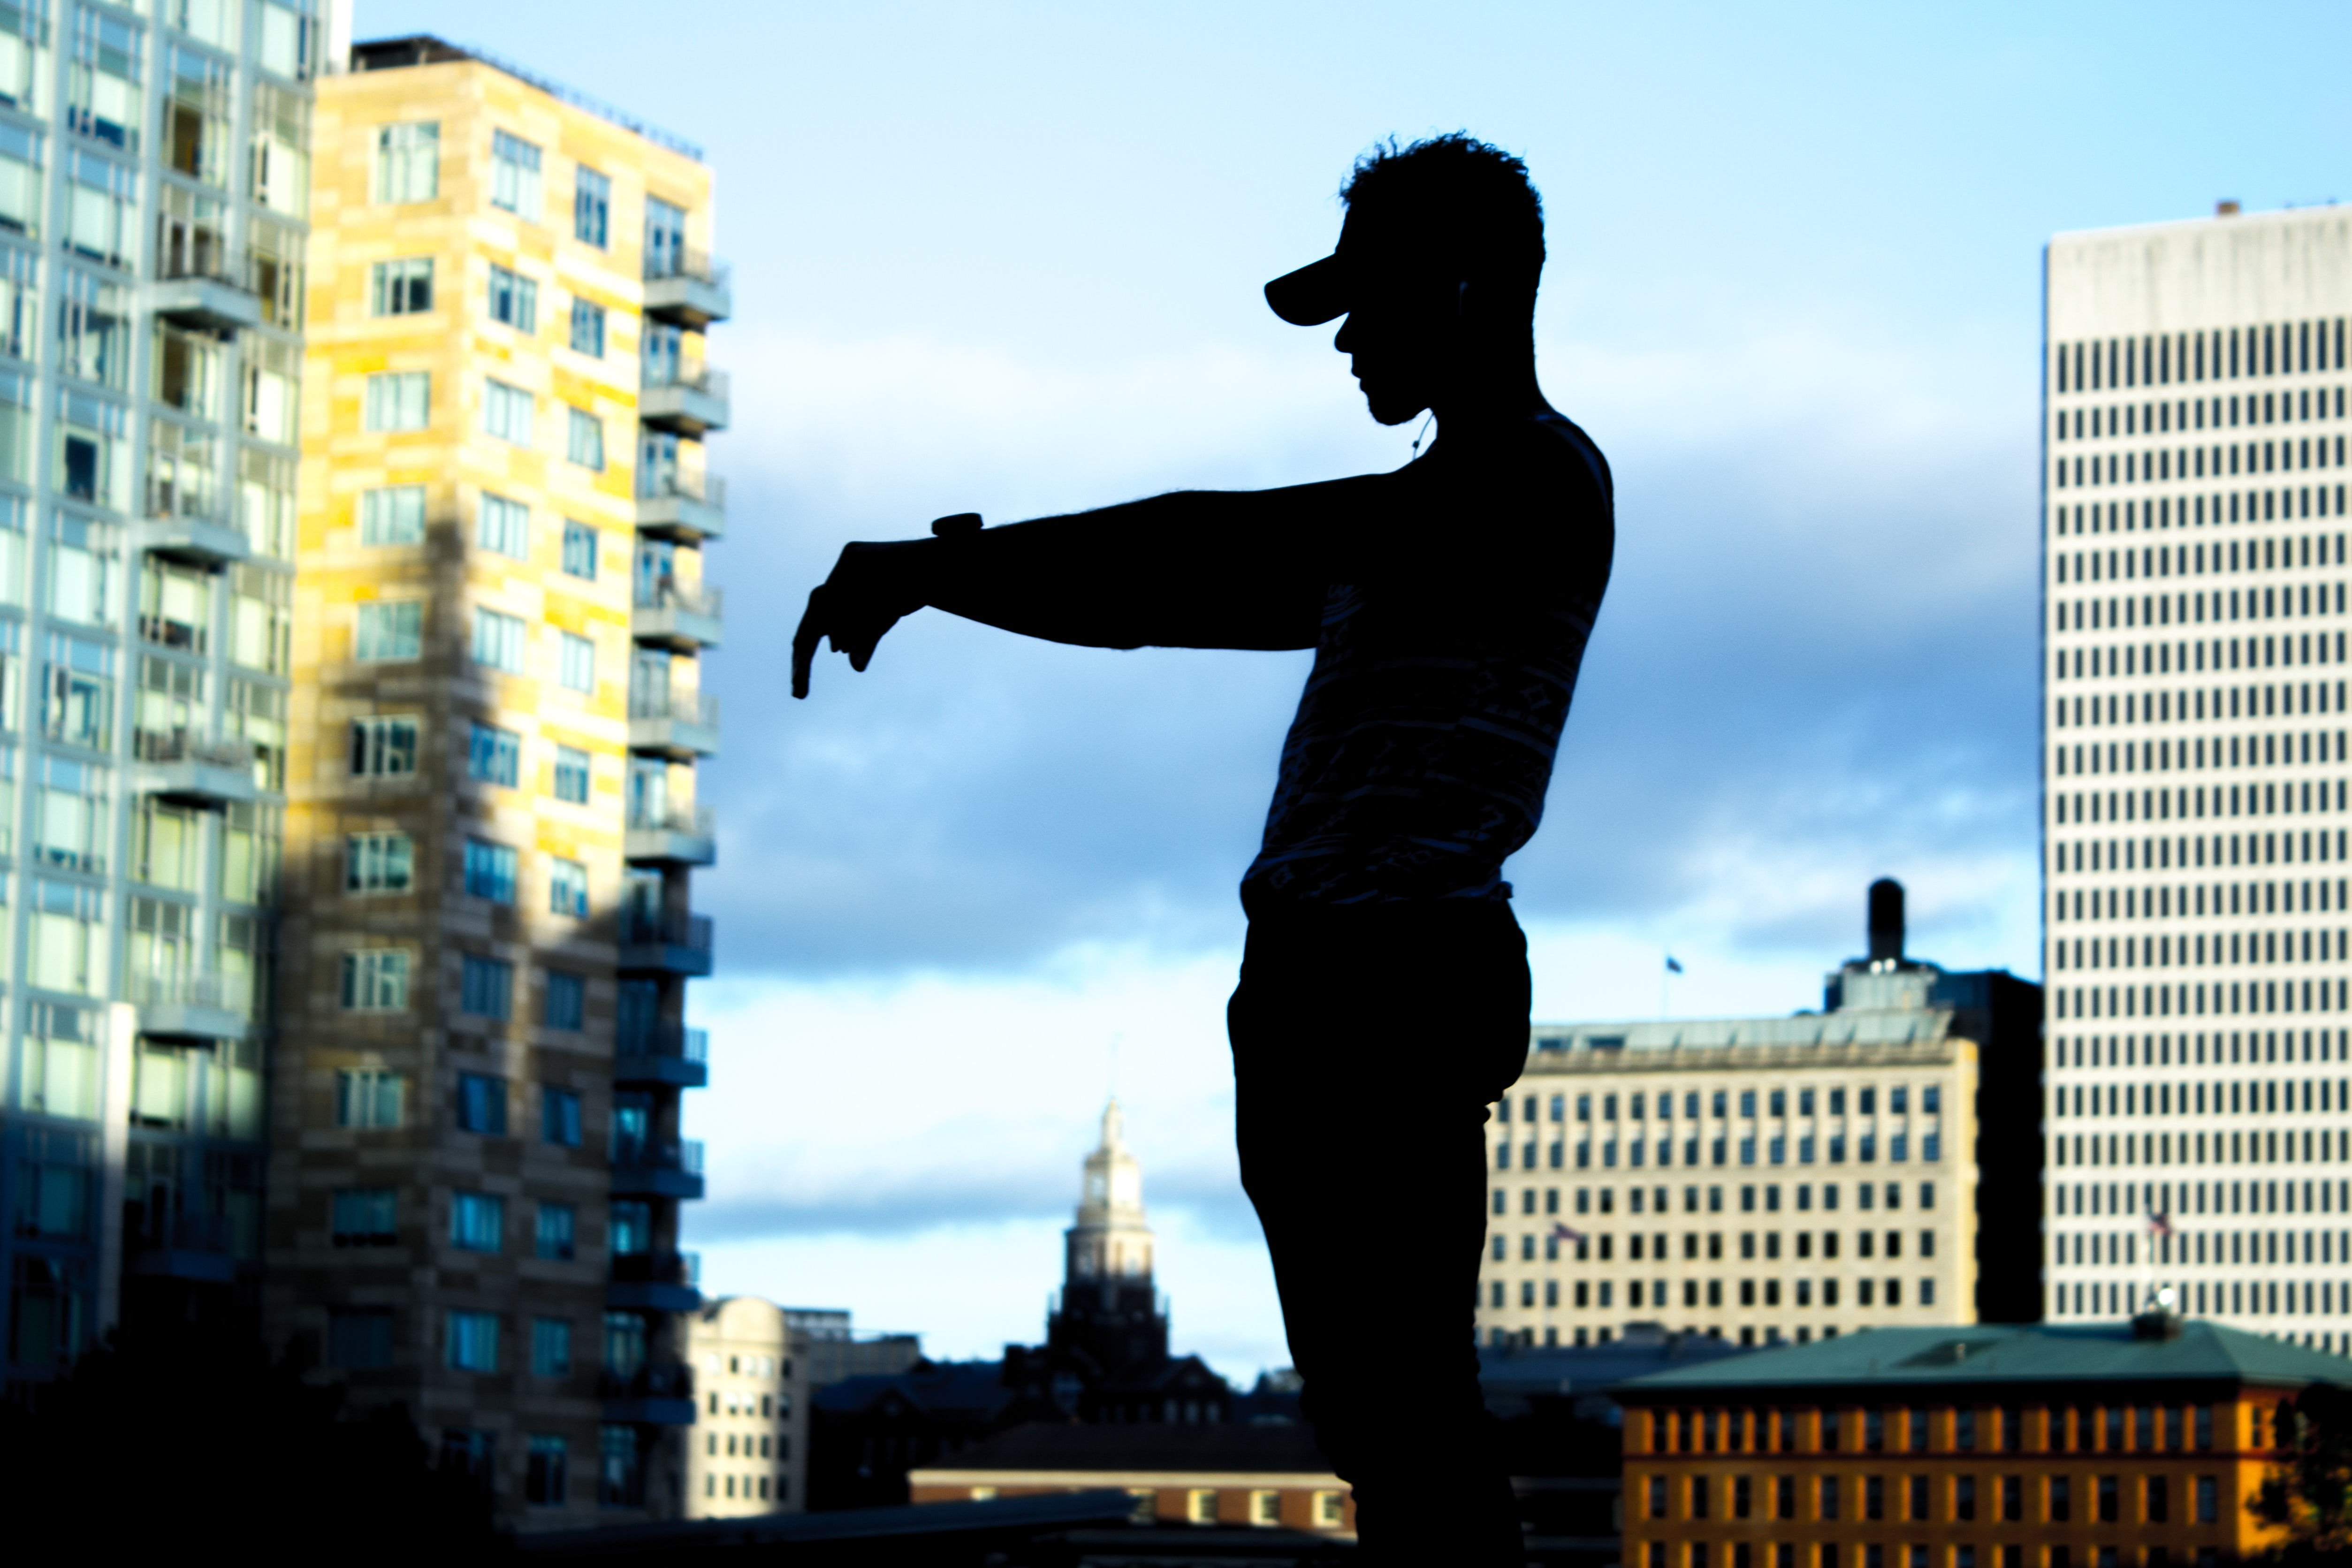 silhouette of man standing in front of high-rise buildings